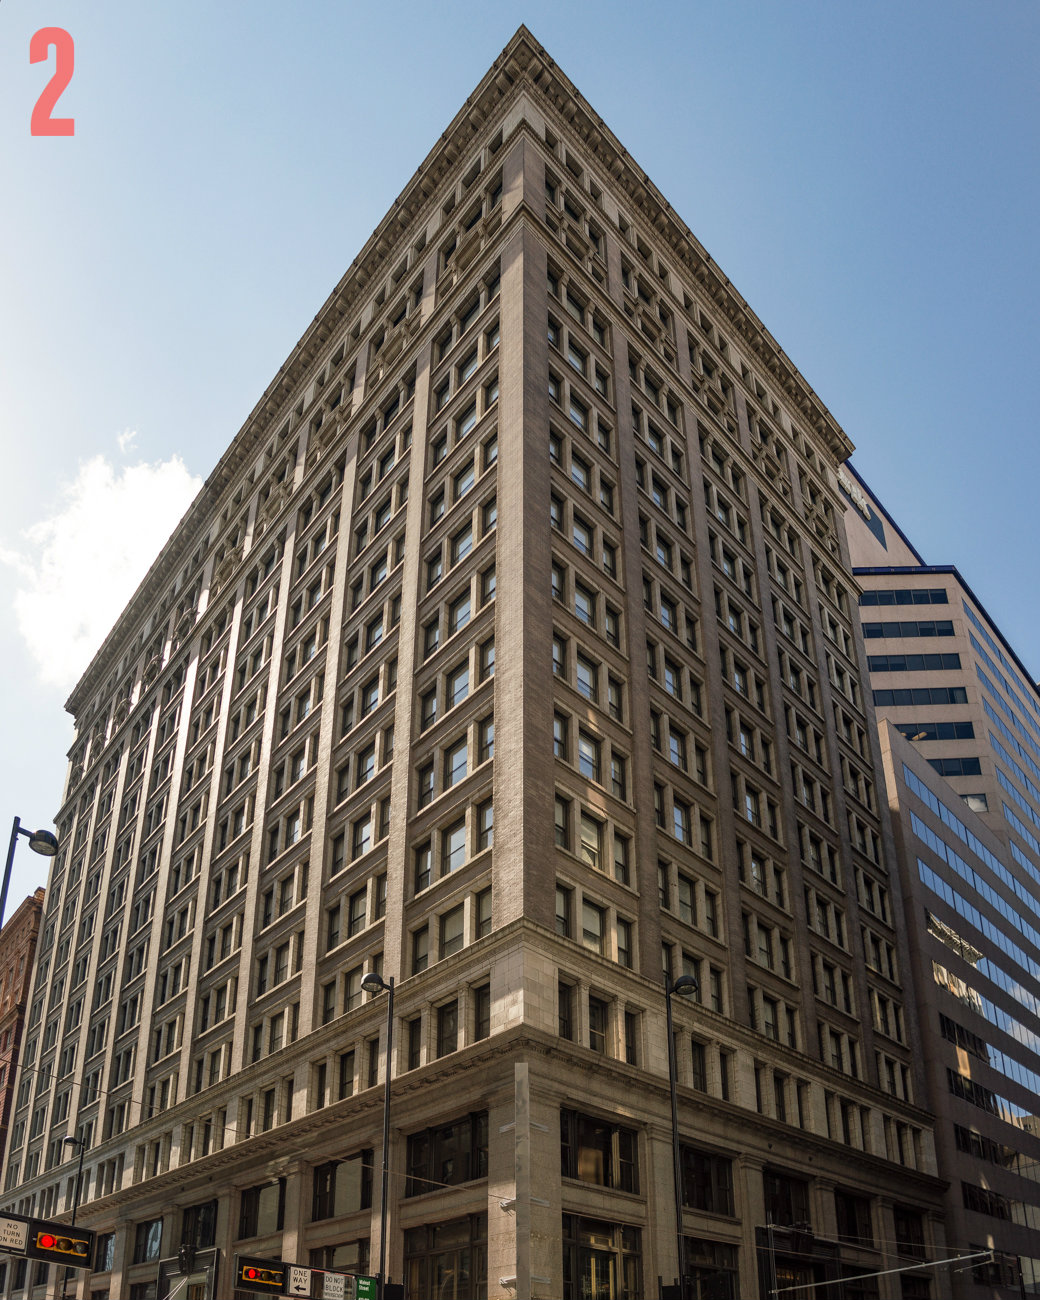 #2 - Did you know that the Renaissance Hotel is historic skyscraper built in 1901 by famed architect Daniel Burnham? Head to the Travel section for more pics & info about this beautiful building. / Image: Phil Armstrong, Cincinnati Refined